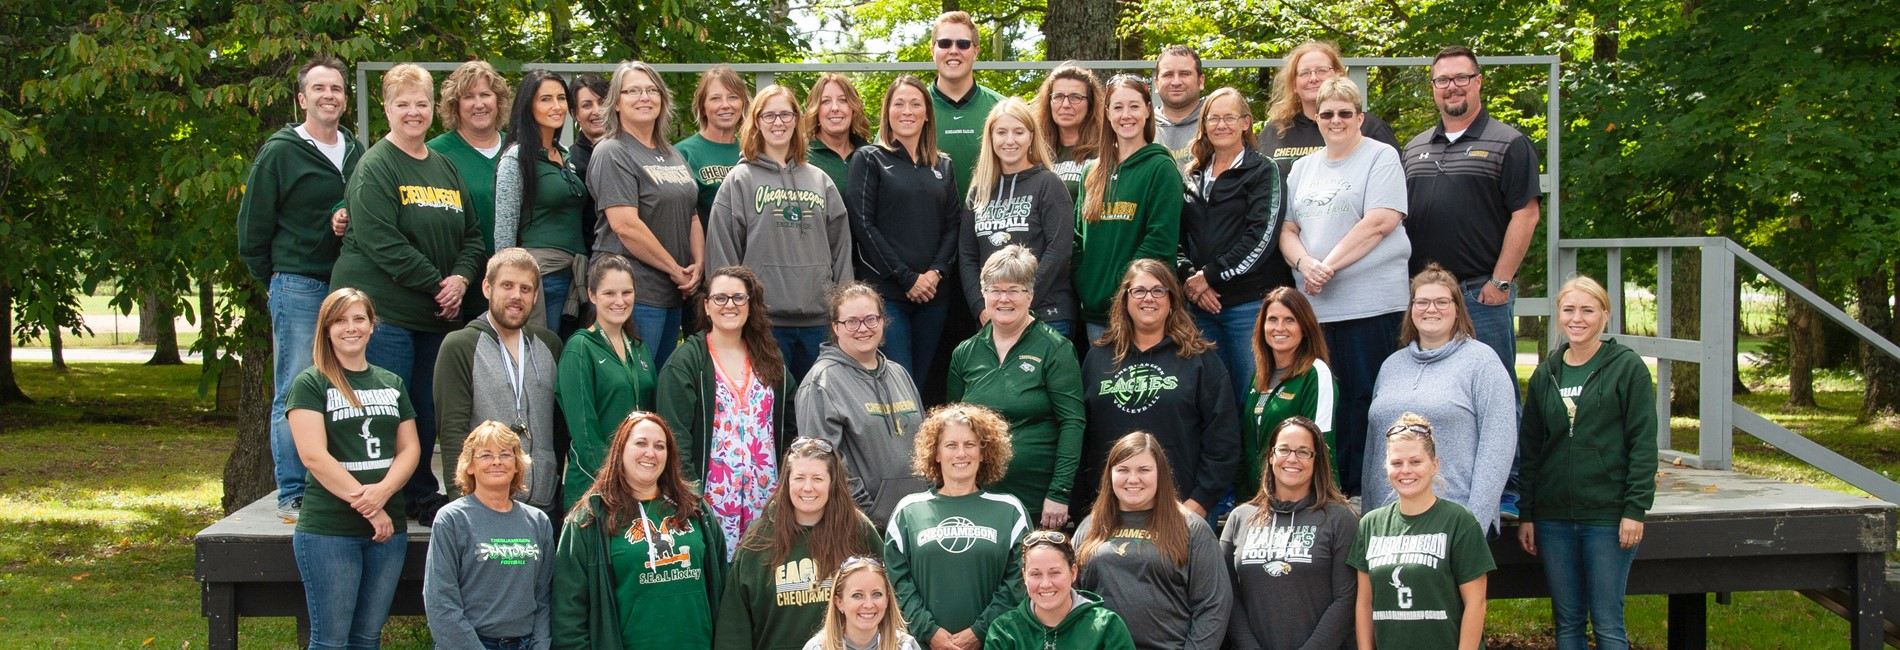 Chequamegon South Elementary Staff